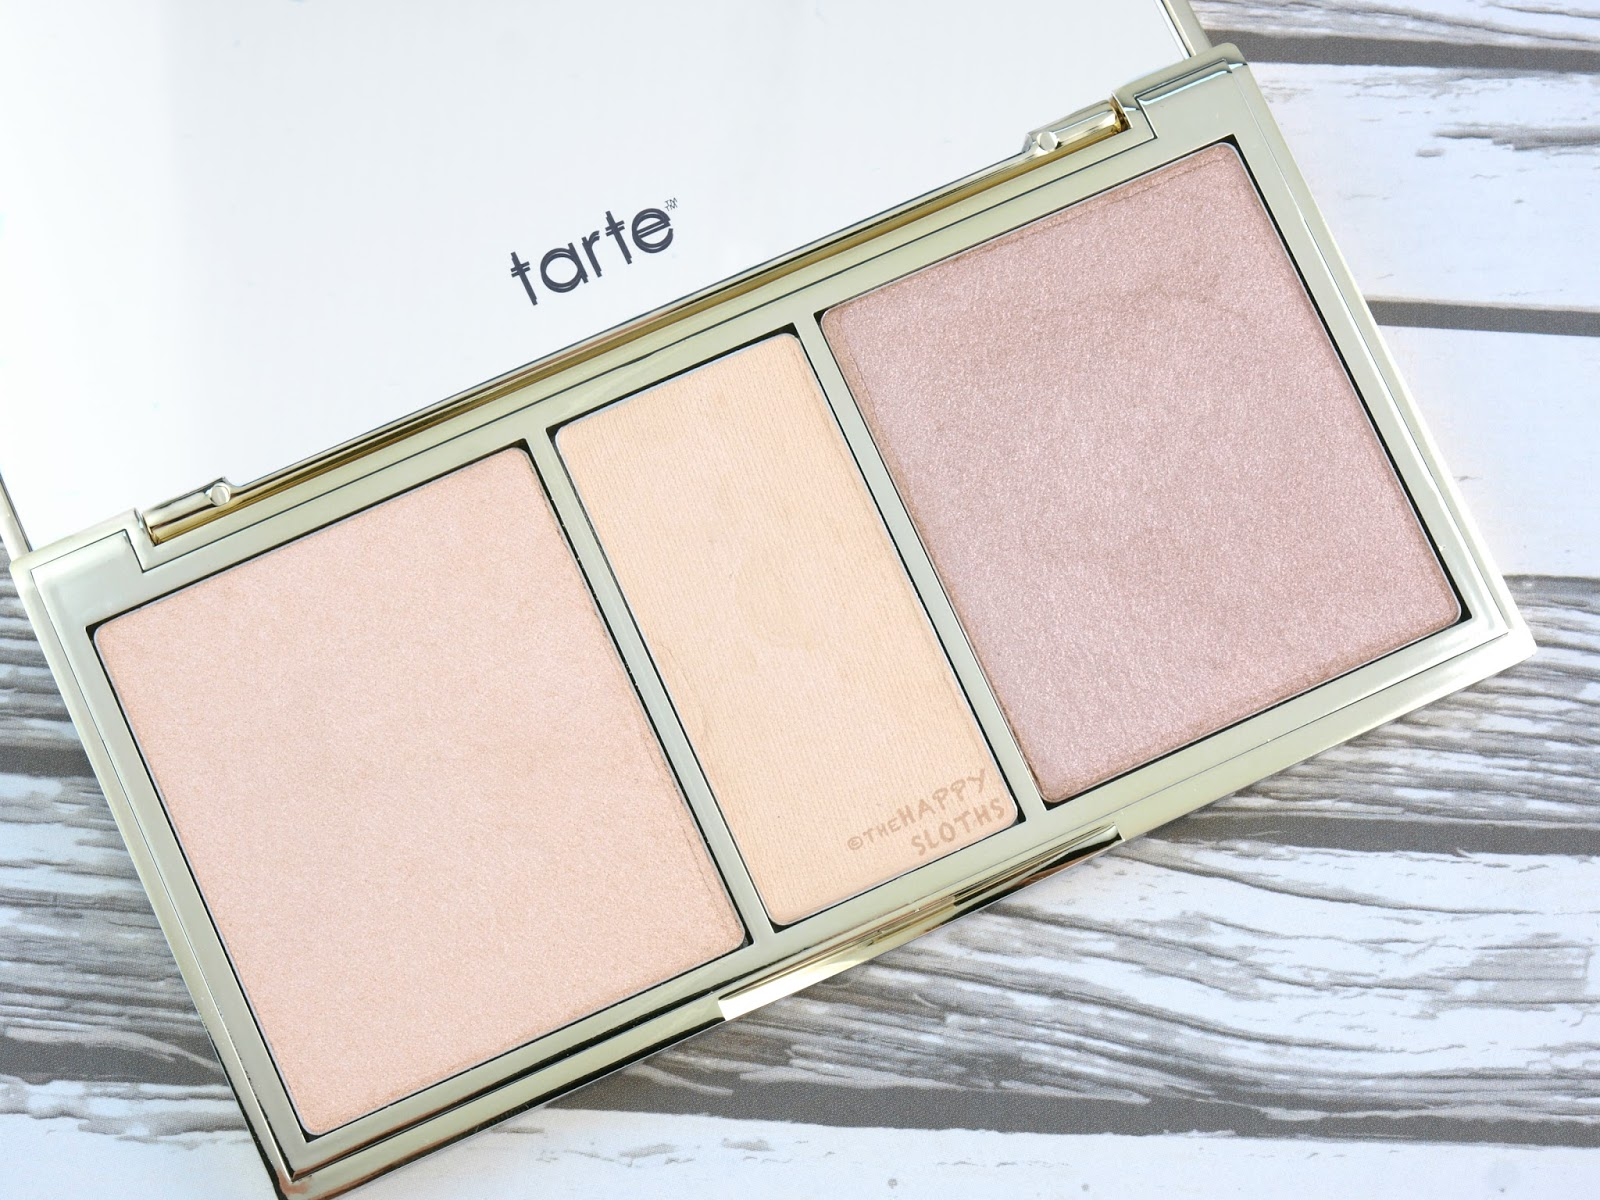 Tarte Rainforest Of The Sea Skin Twinkle Lighting Palette Review